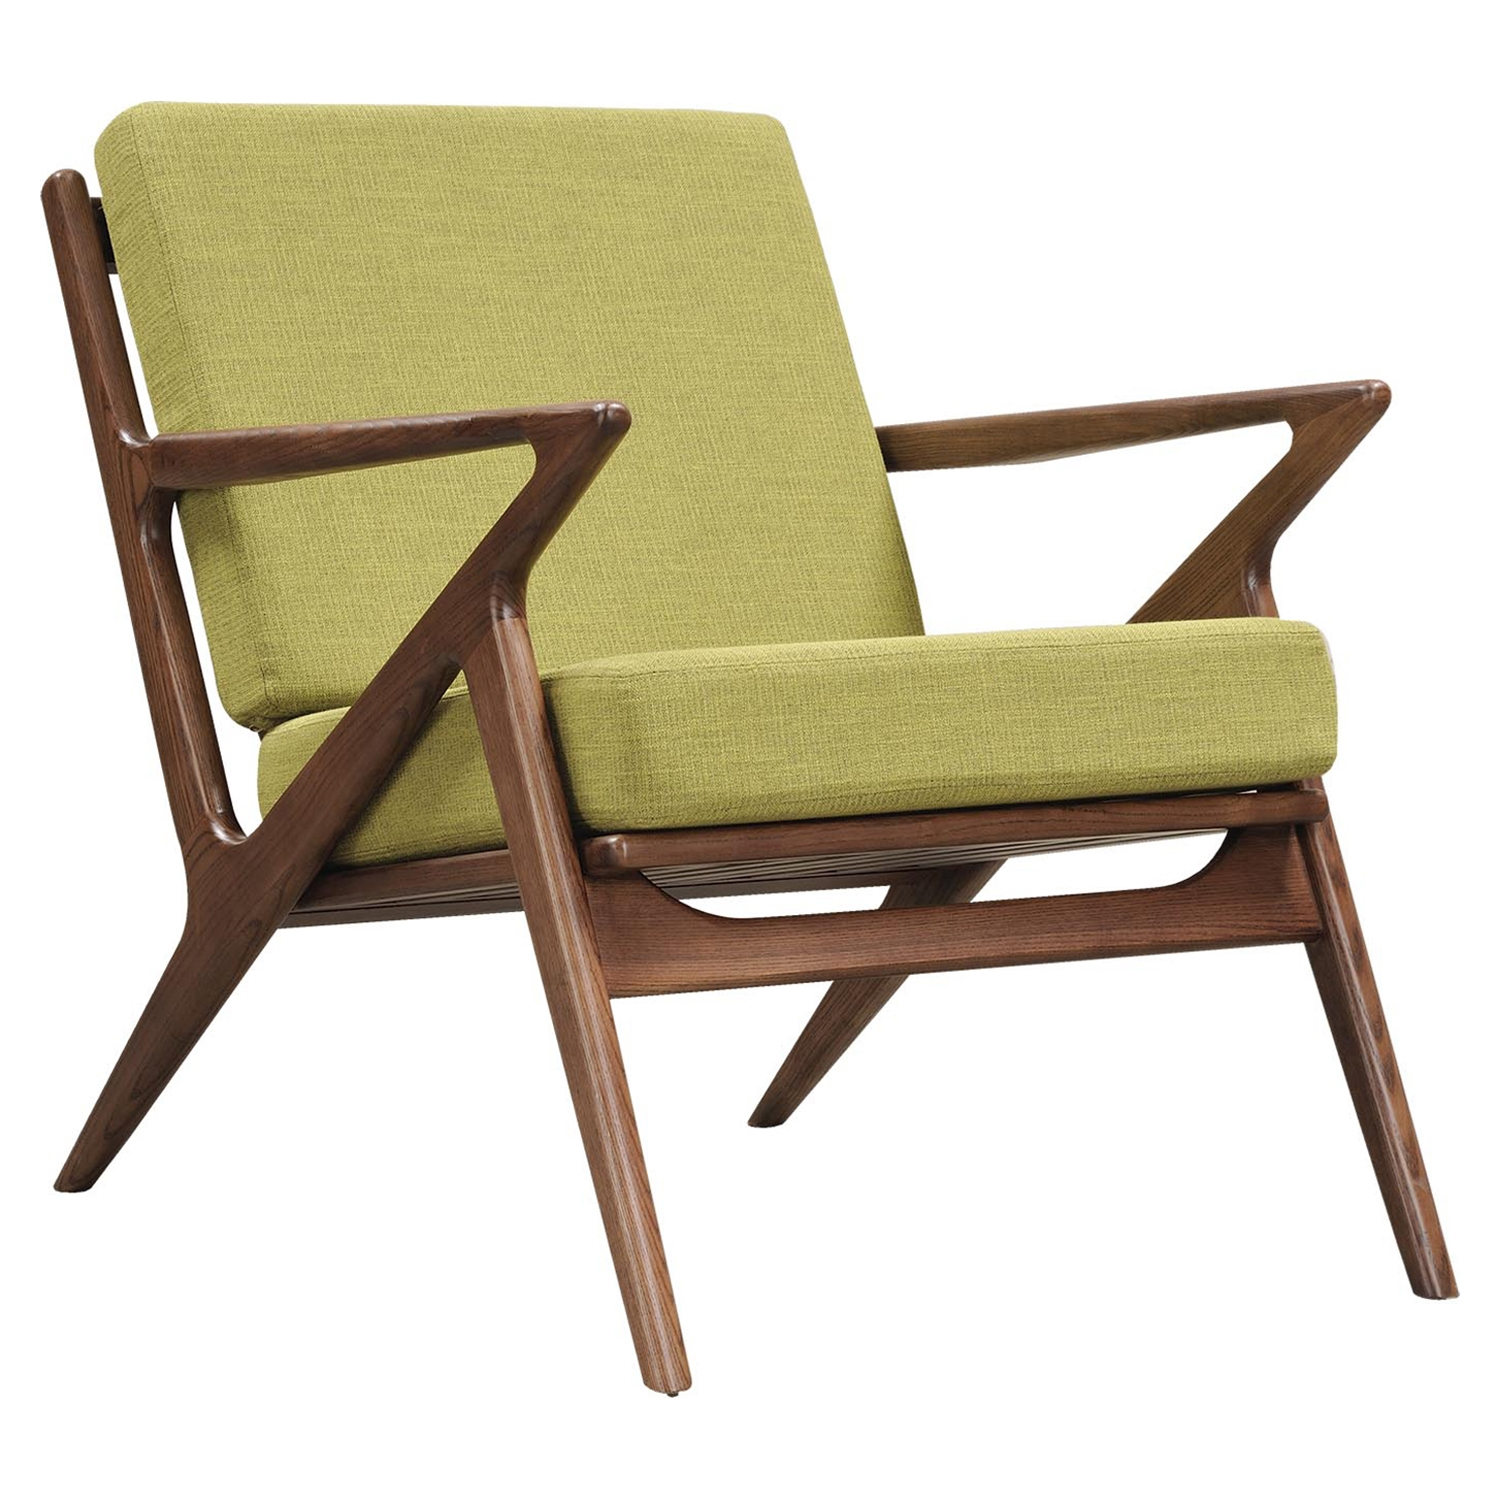 Zain Armchair - Avocado Green - NYEK-224477